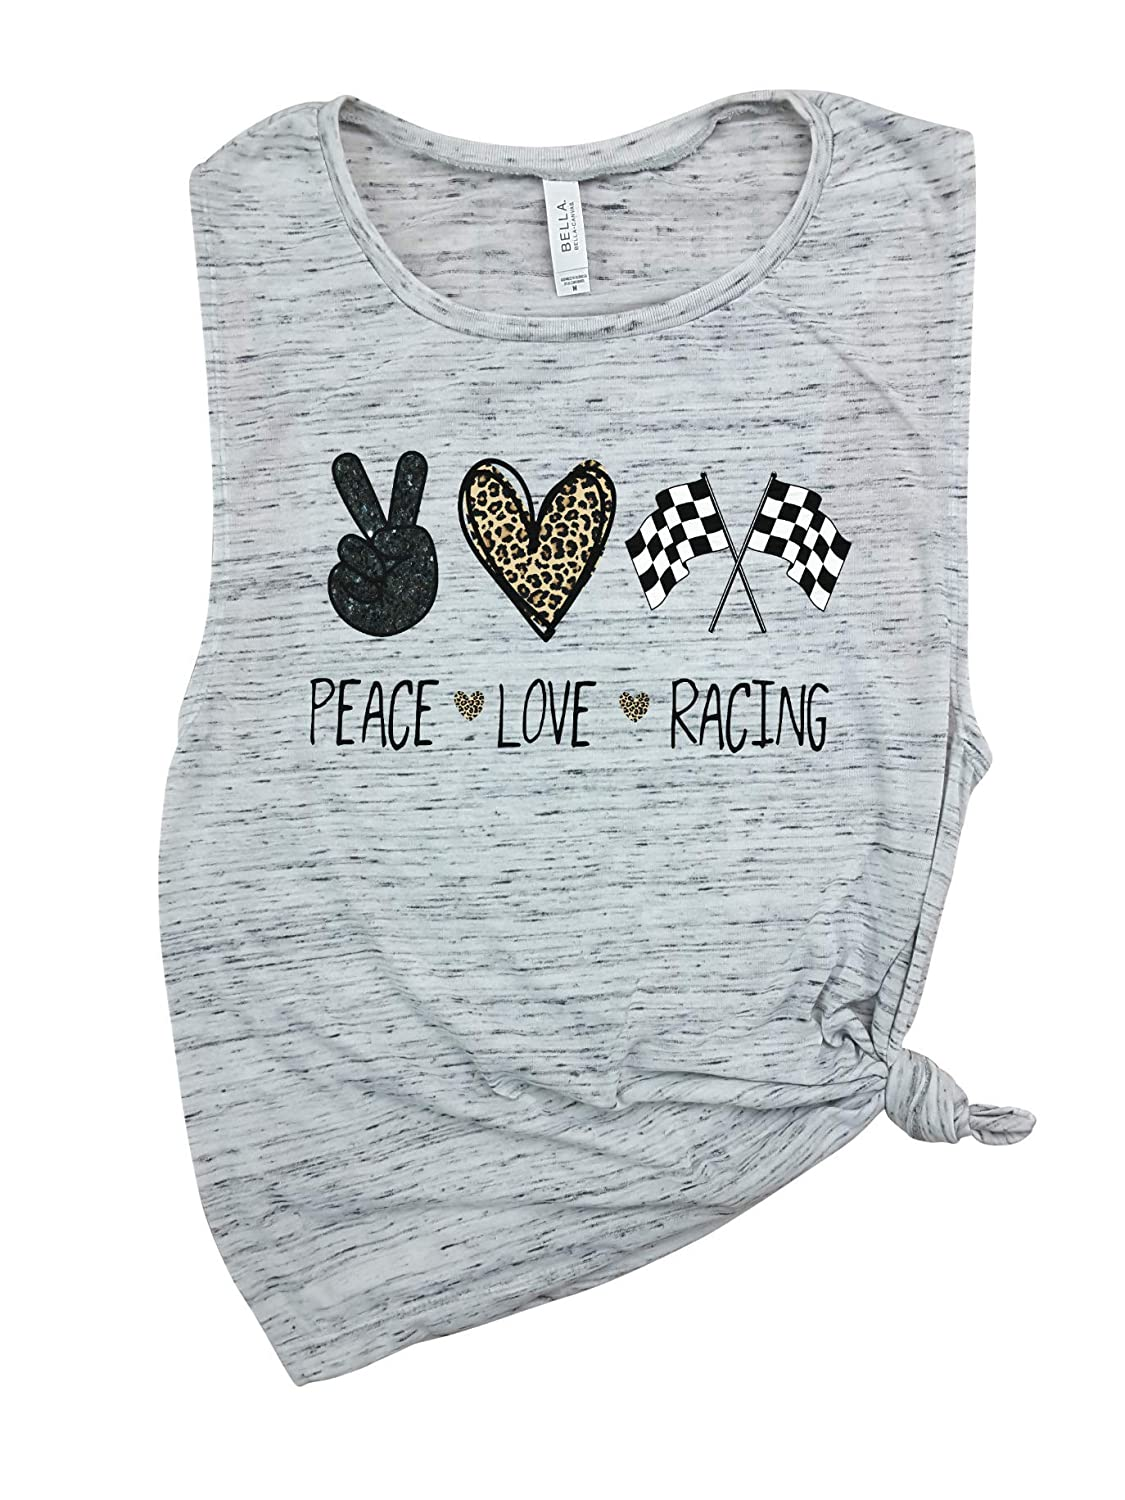 Peace Love Racing - Fast Cars Max 85% OFF bee Beer Award-winning store Day shirt day Race